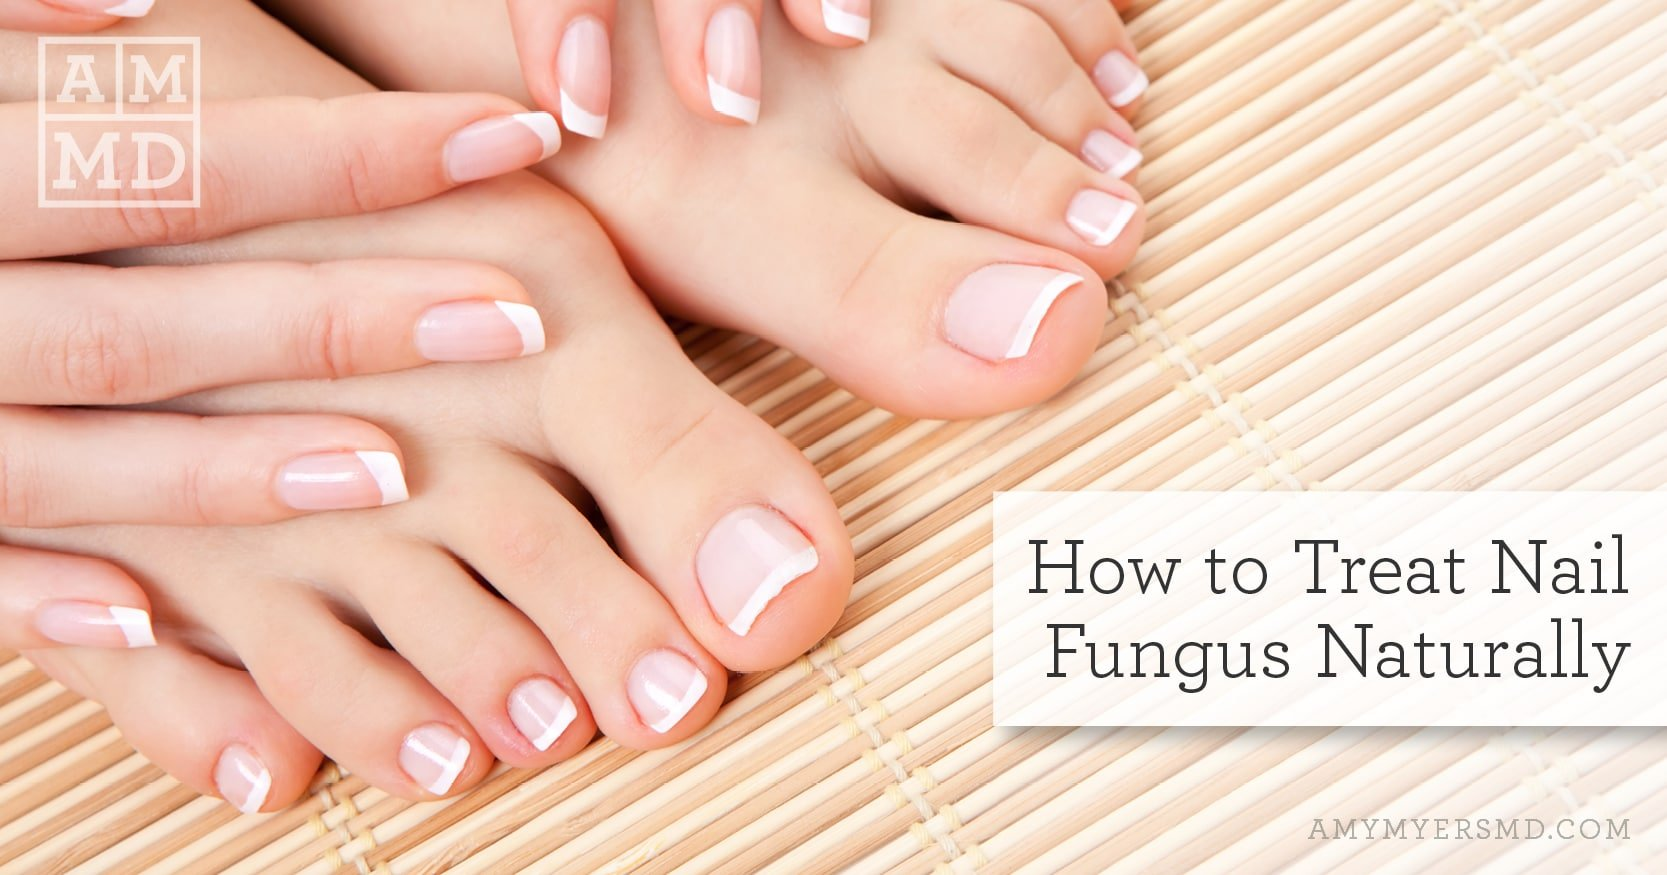 Natural Nail Fungus Treatments - A Woman's Feet - Featured Image - Amy Myers MD